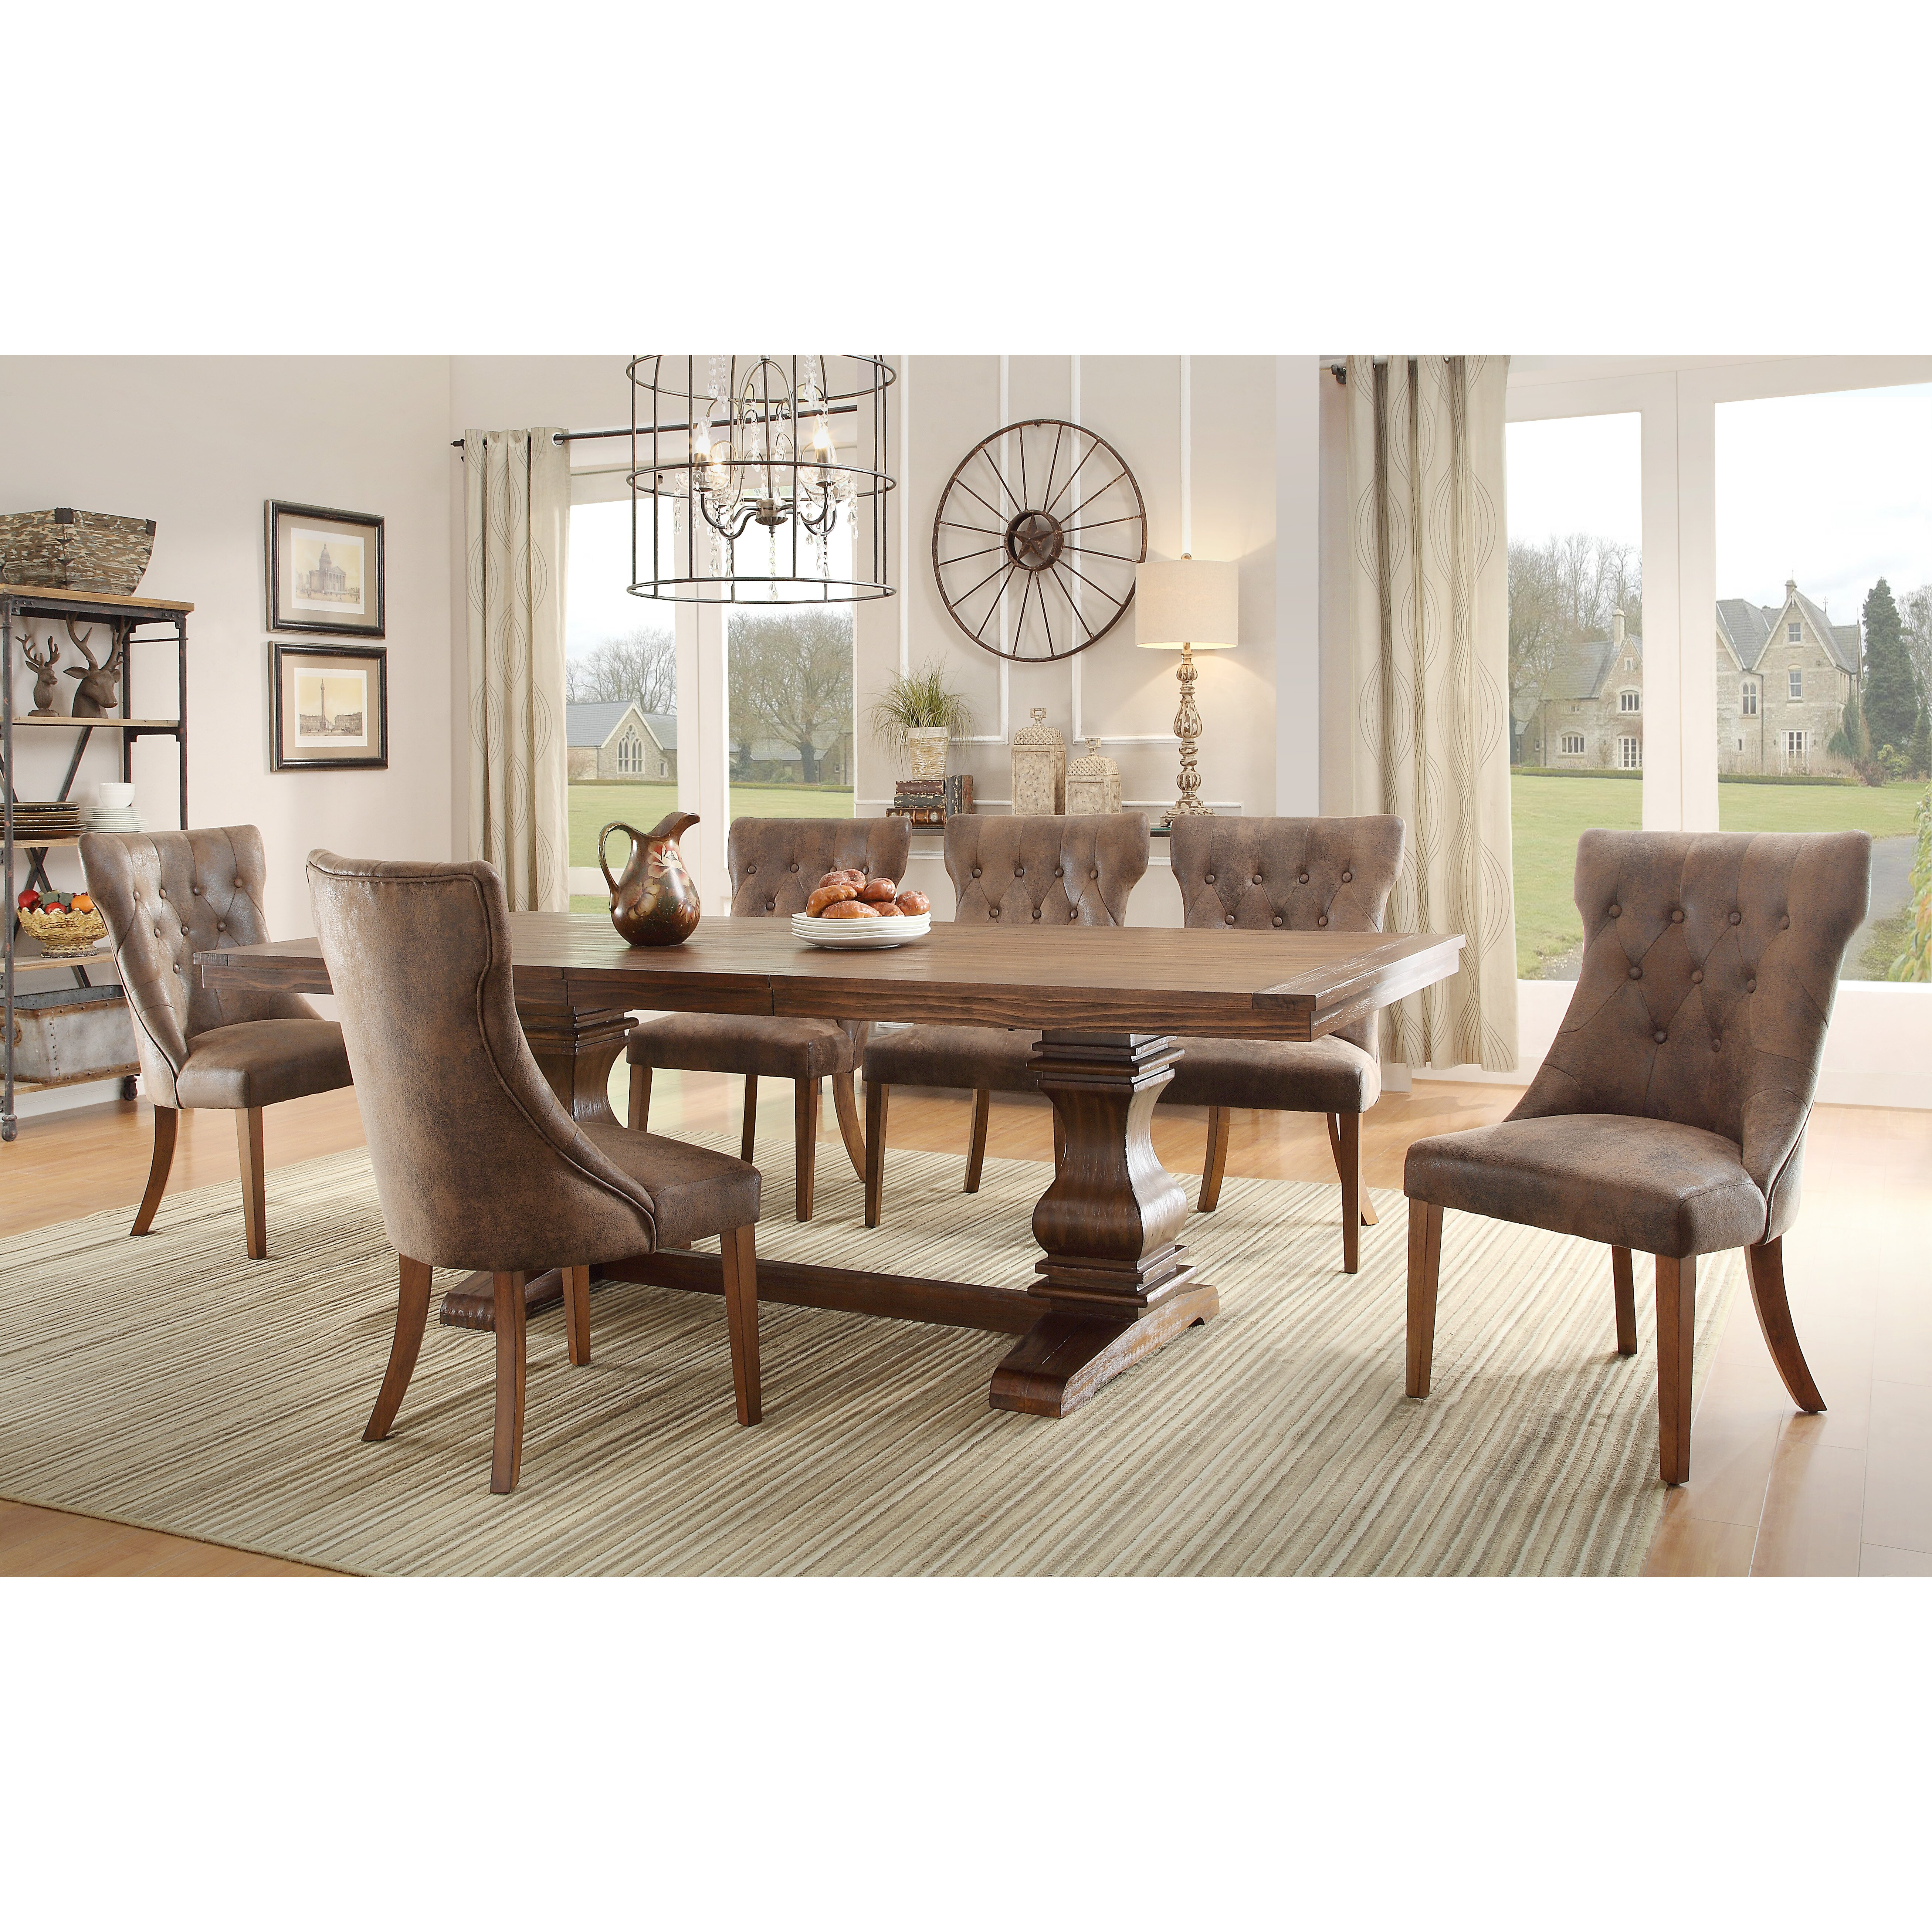 Elton Extendable Dining Room Table